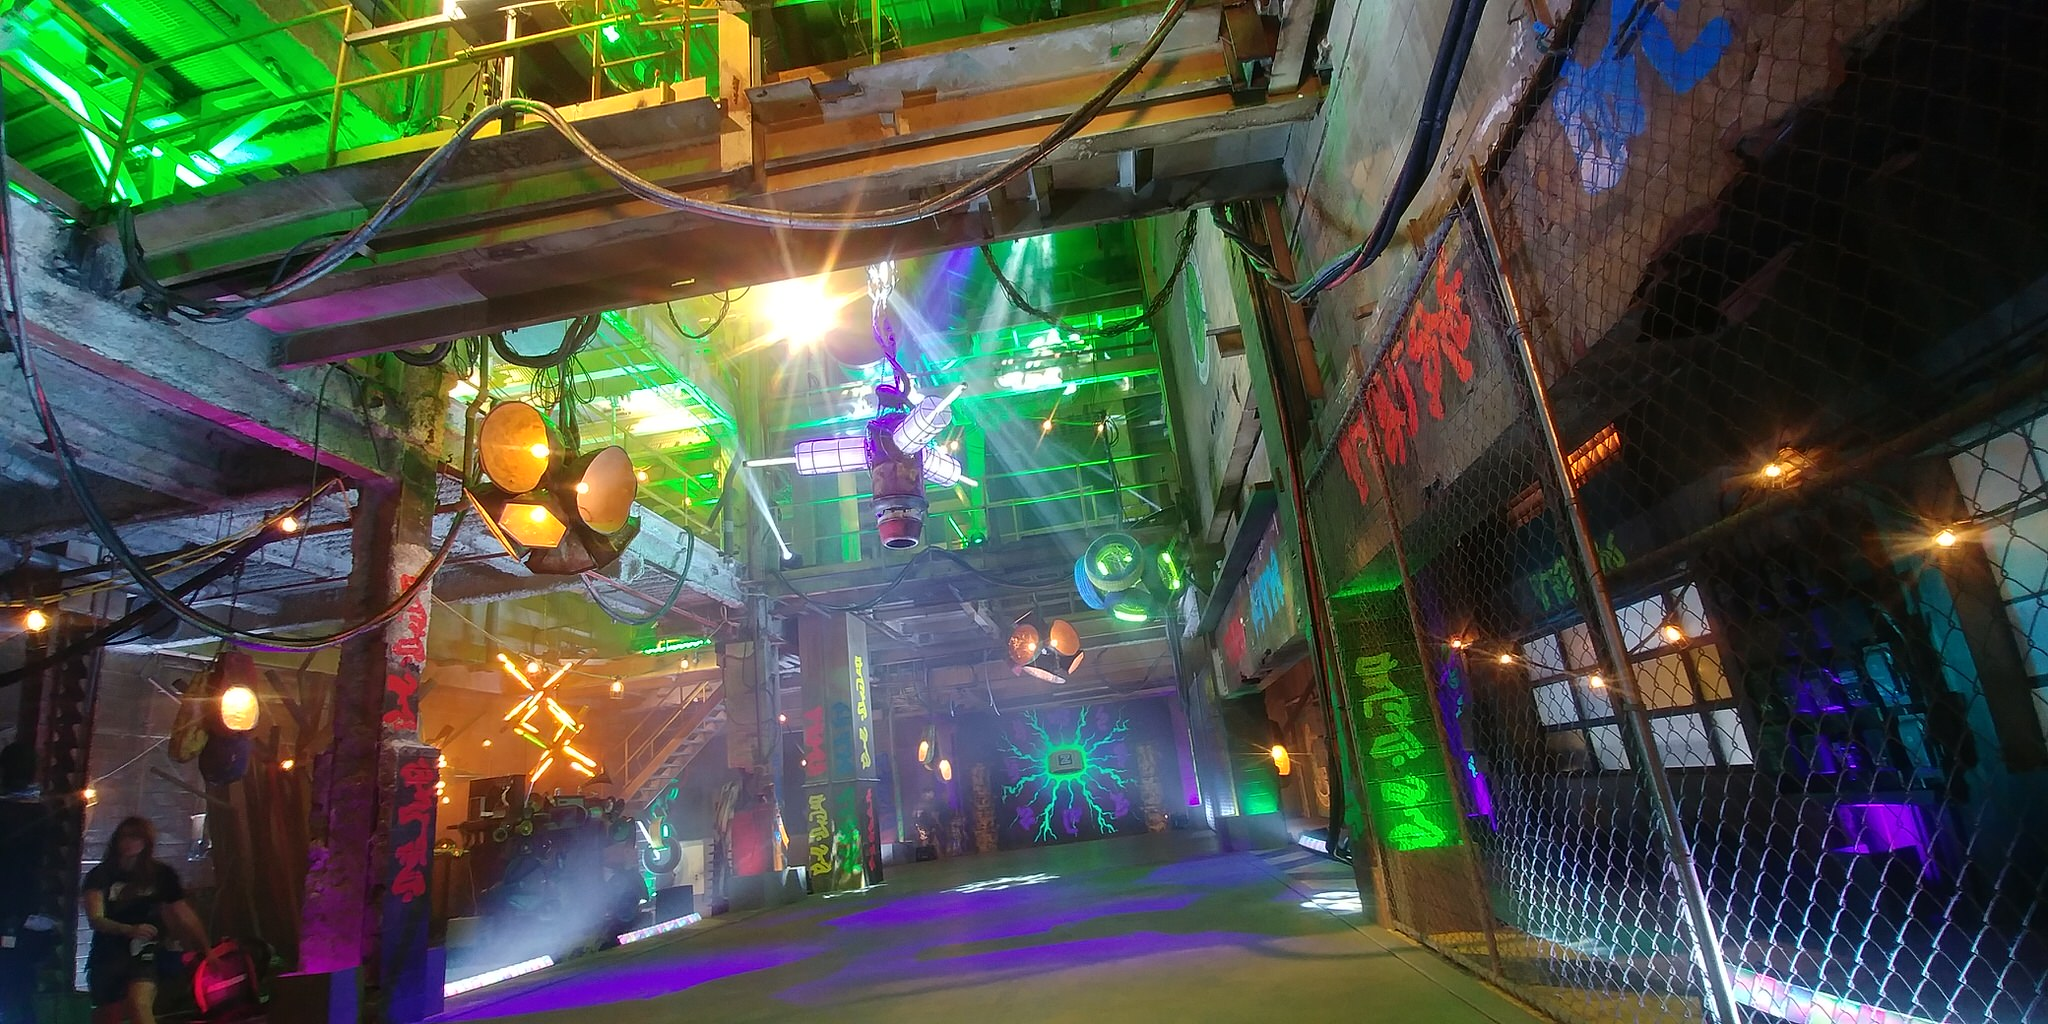 The tentpole musical number of Disney's Z-O-M-B-I-E-S is BAMM set in the very heart of the ruined energy plant. Here the zombies can truly be themselves safe from human interference. Also here they bring to bear all their ingenuity and technical skill to create a cobbled-together rave-like atmosphere.